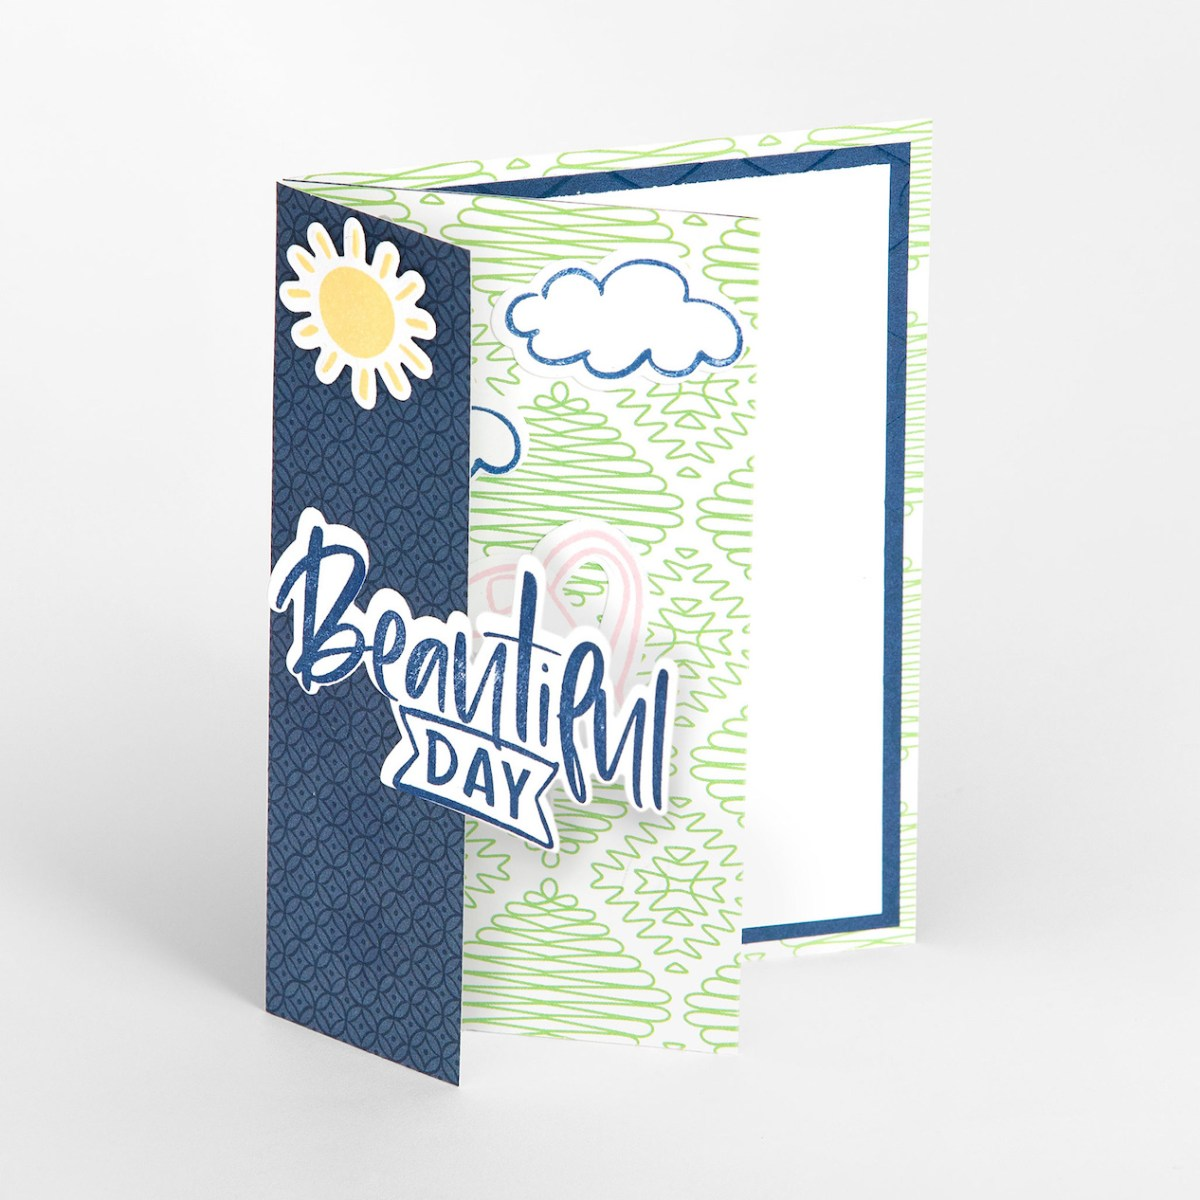 Blue Skies Collection #ctmh #closetomyheart #ctmhblueskies #nationalscrapbookingmonth #nationalscrapbookingday #ctmhnsd #ctmhnsm #scrapbooking #cardmaking #papercrafting #everydaylife #minialbum #cutabove #pinwheel #thincuts #blueskies #beautifulday #giveaway